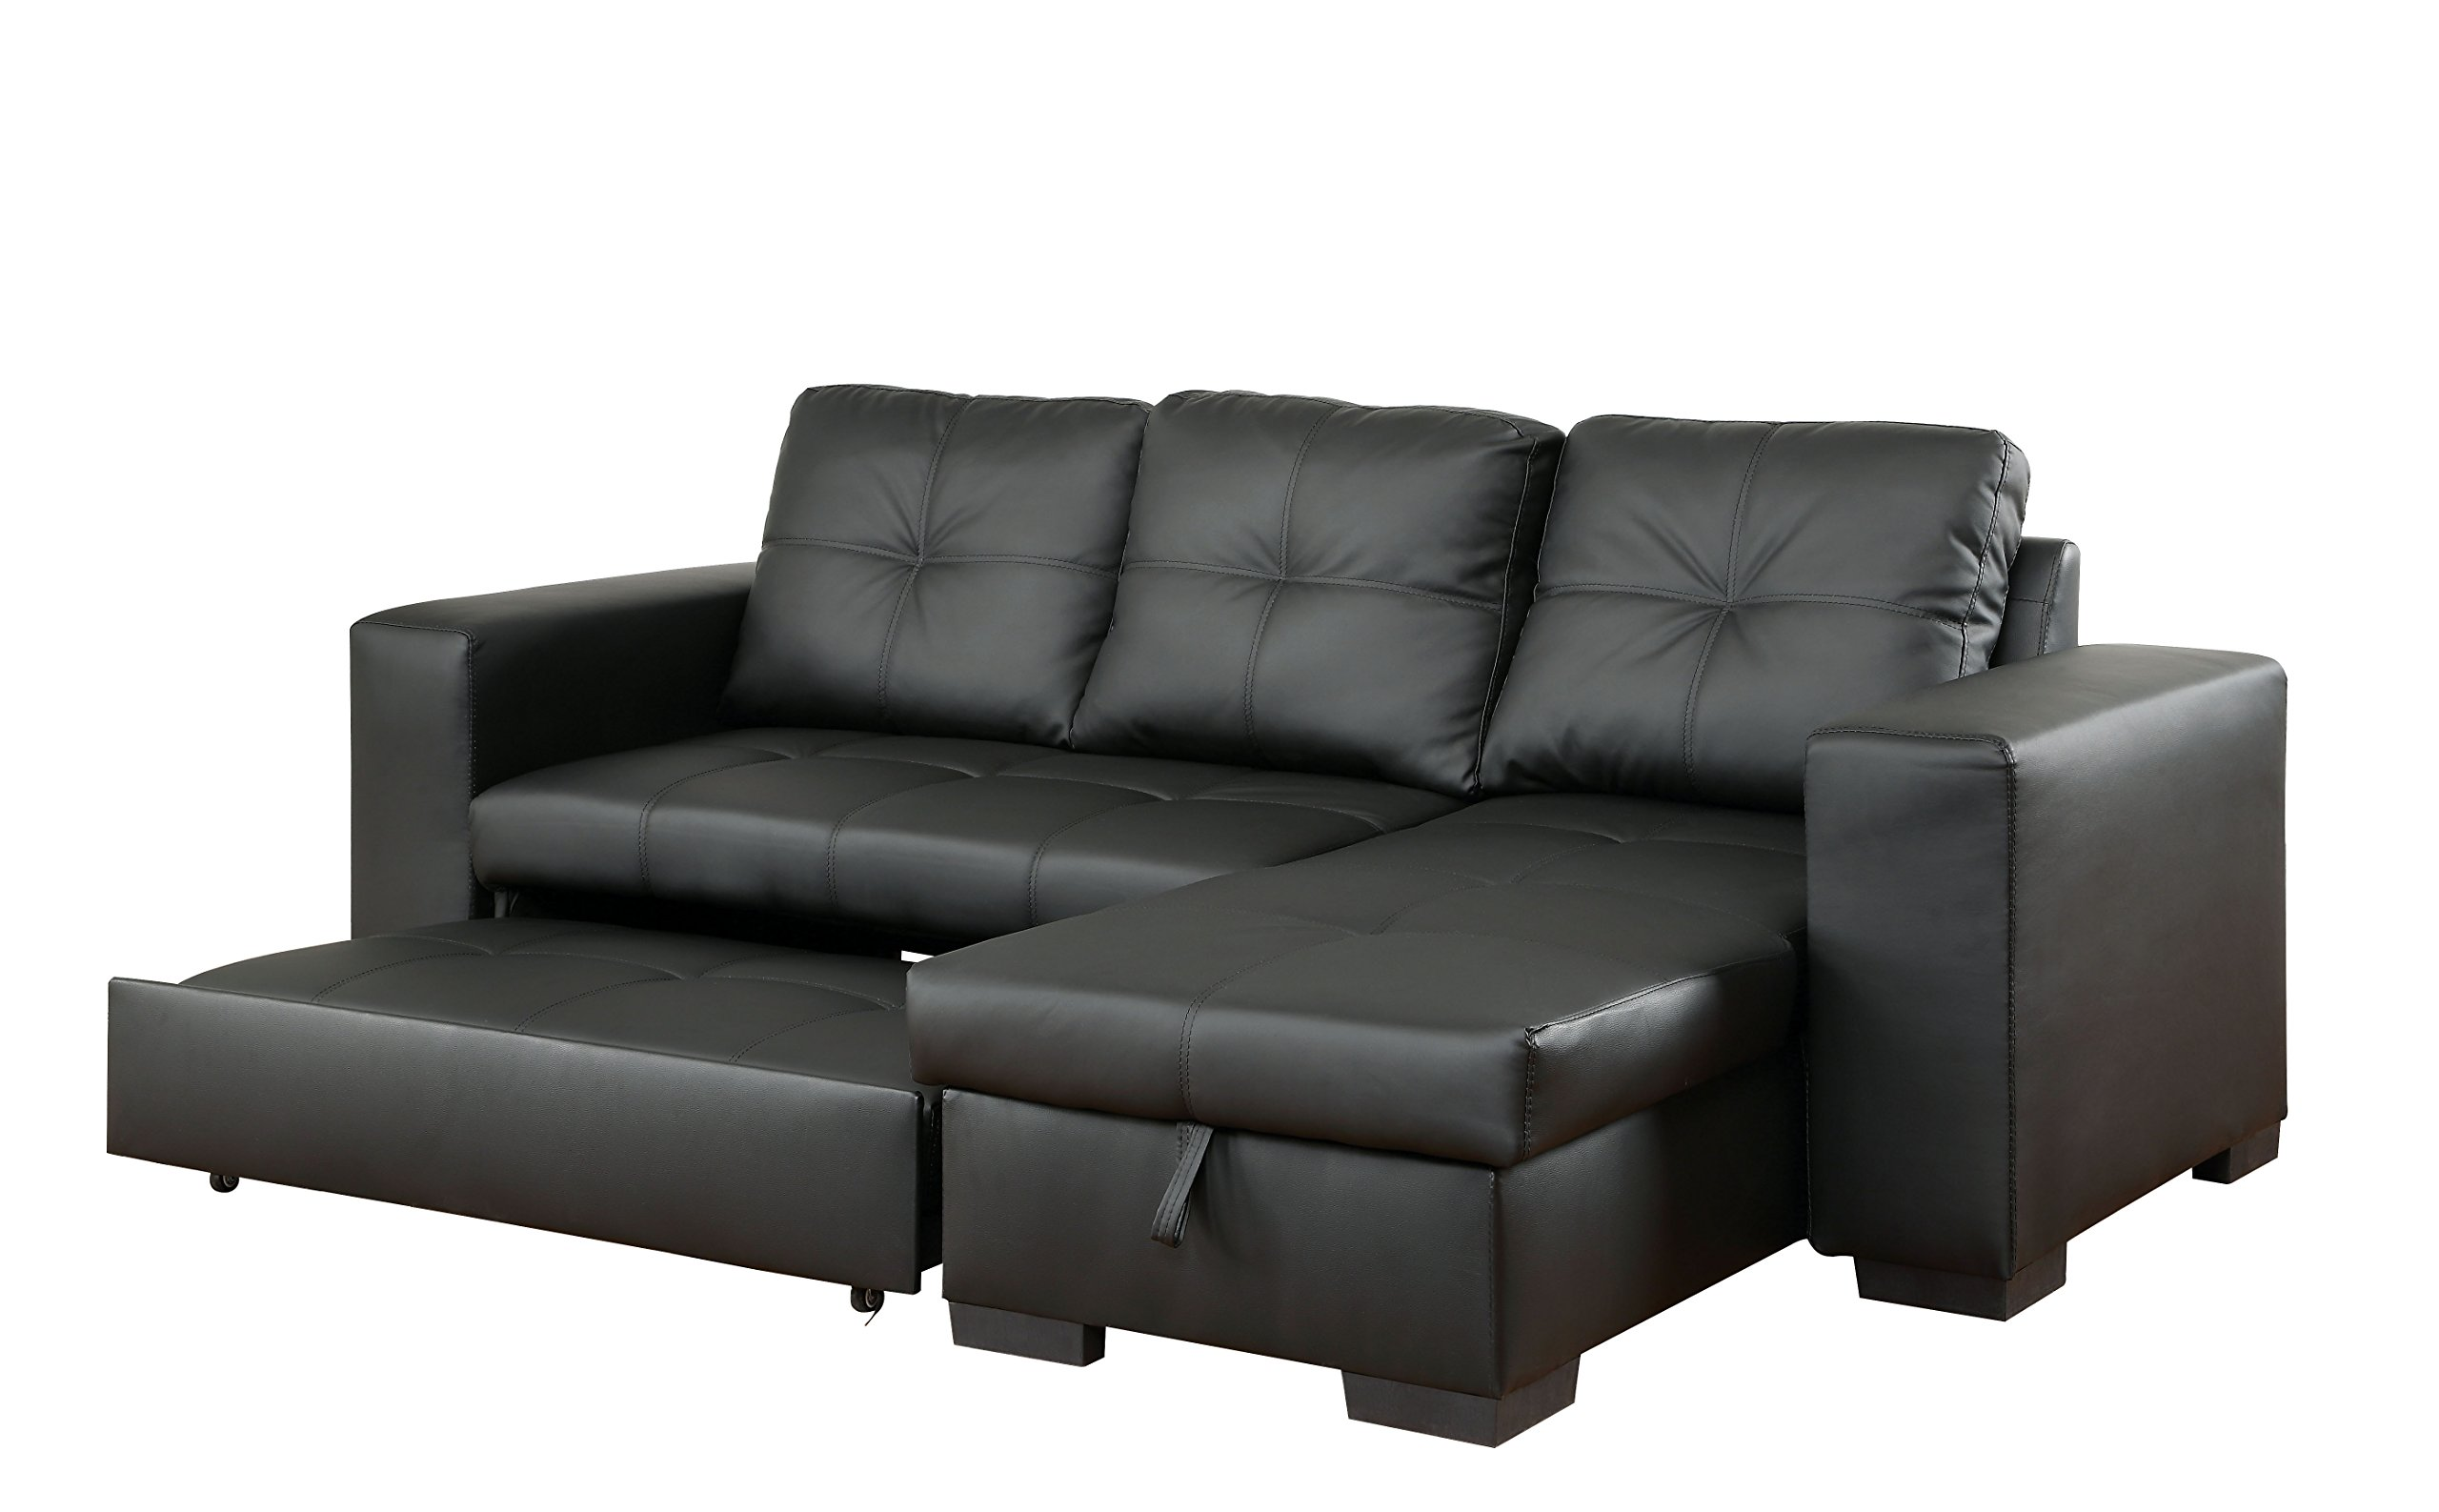 sleeper sofa with chaise amazon com rh amazon com chaise sofa sleeper for sale ashley chaise sofa sleeper